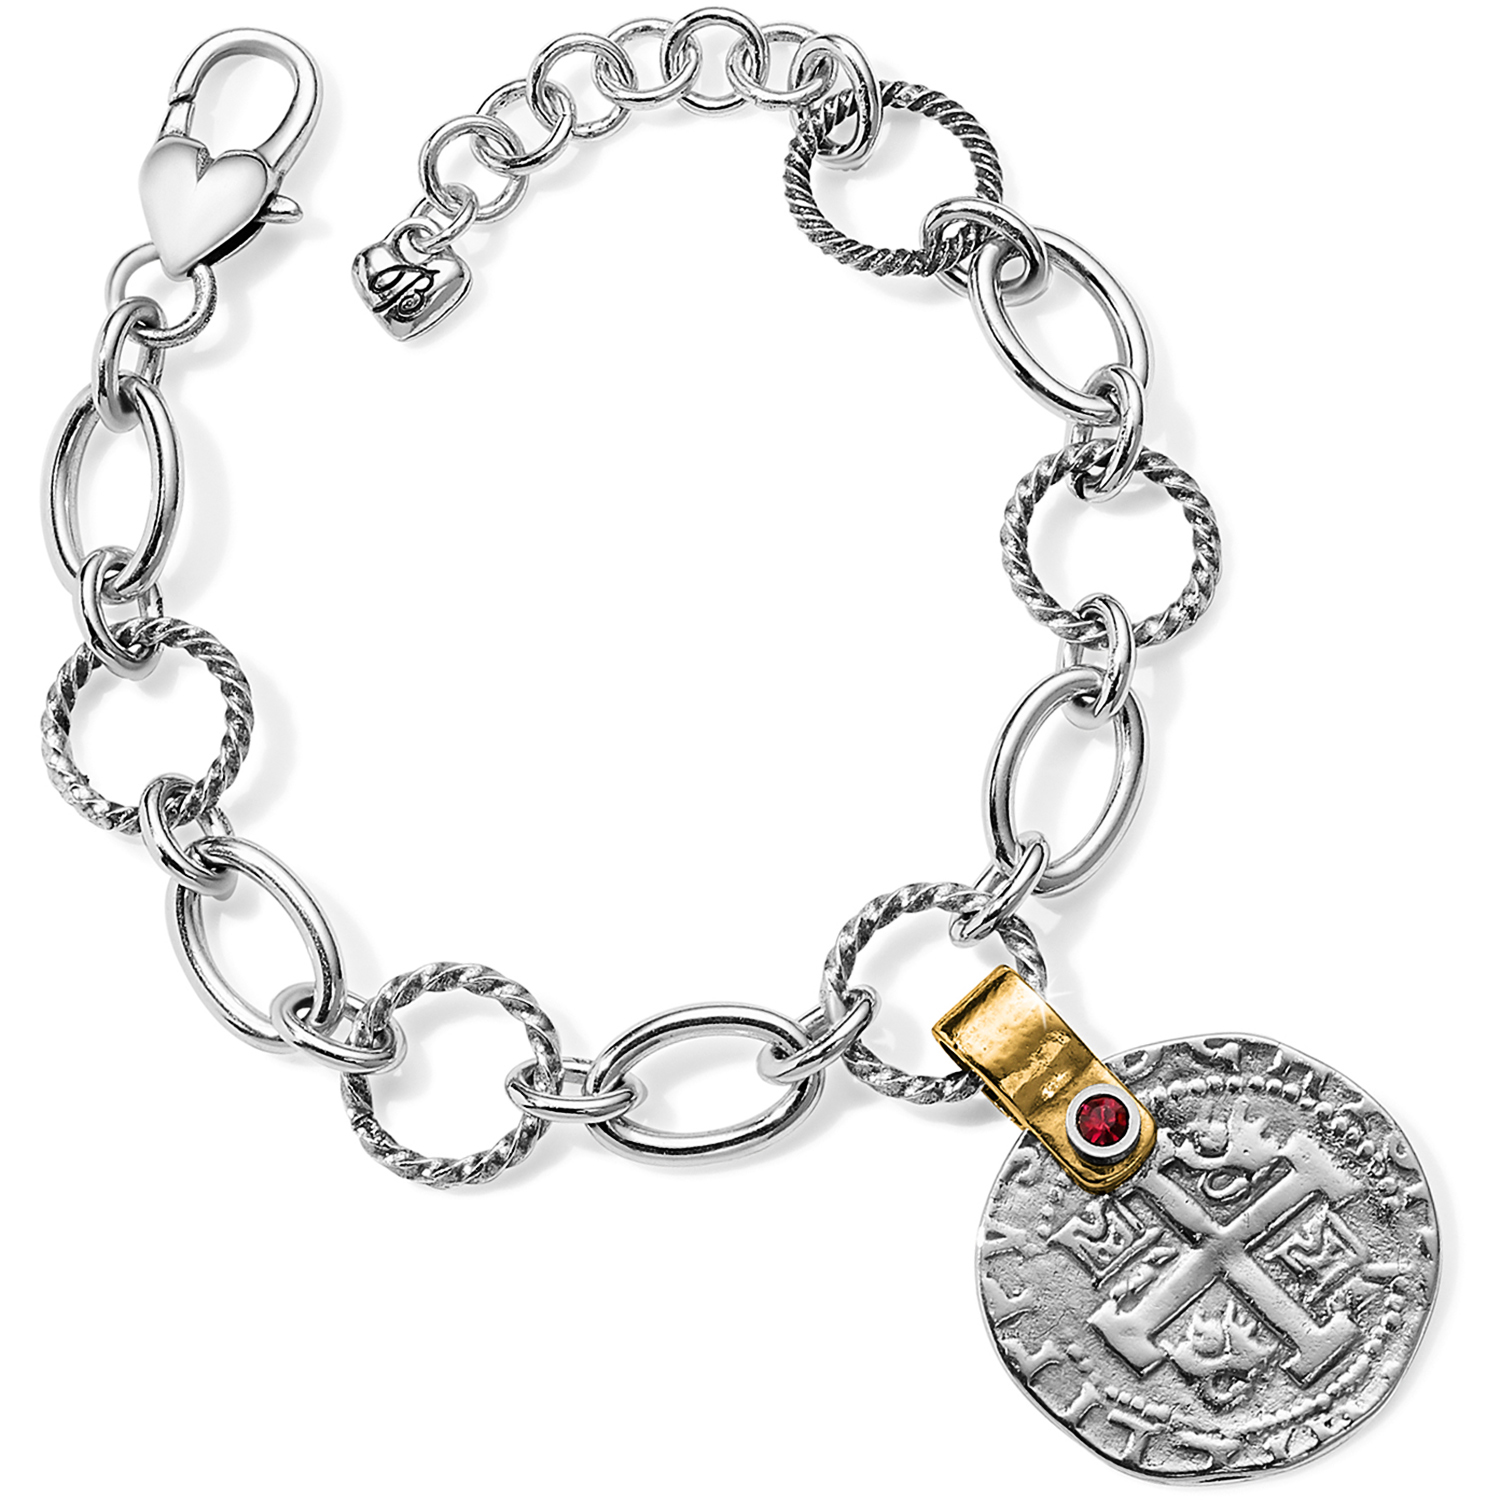 Doubloon Bracelet from Brighton